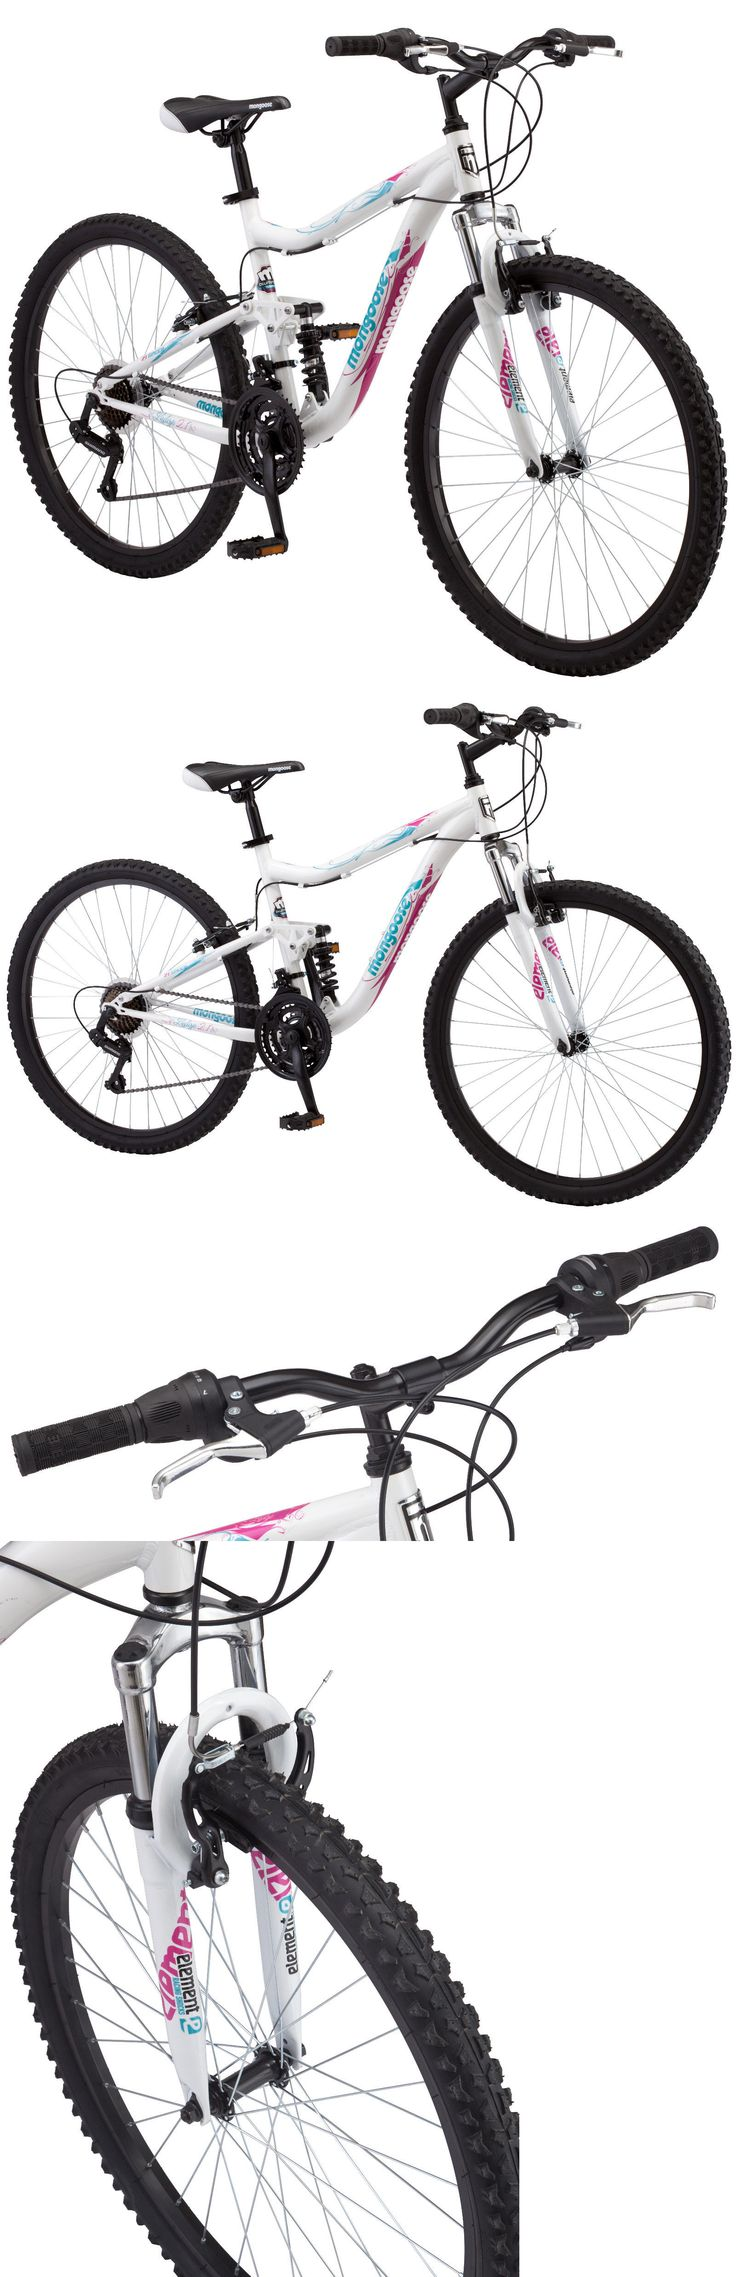 bicycles: 26 Mongoose Ledge 2.1 Dual Suspension Mountain Bike, White -> BUY IT NOW ONLY: $119.99 on eBay!